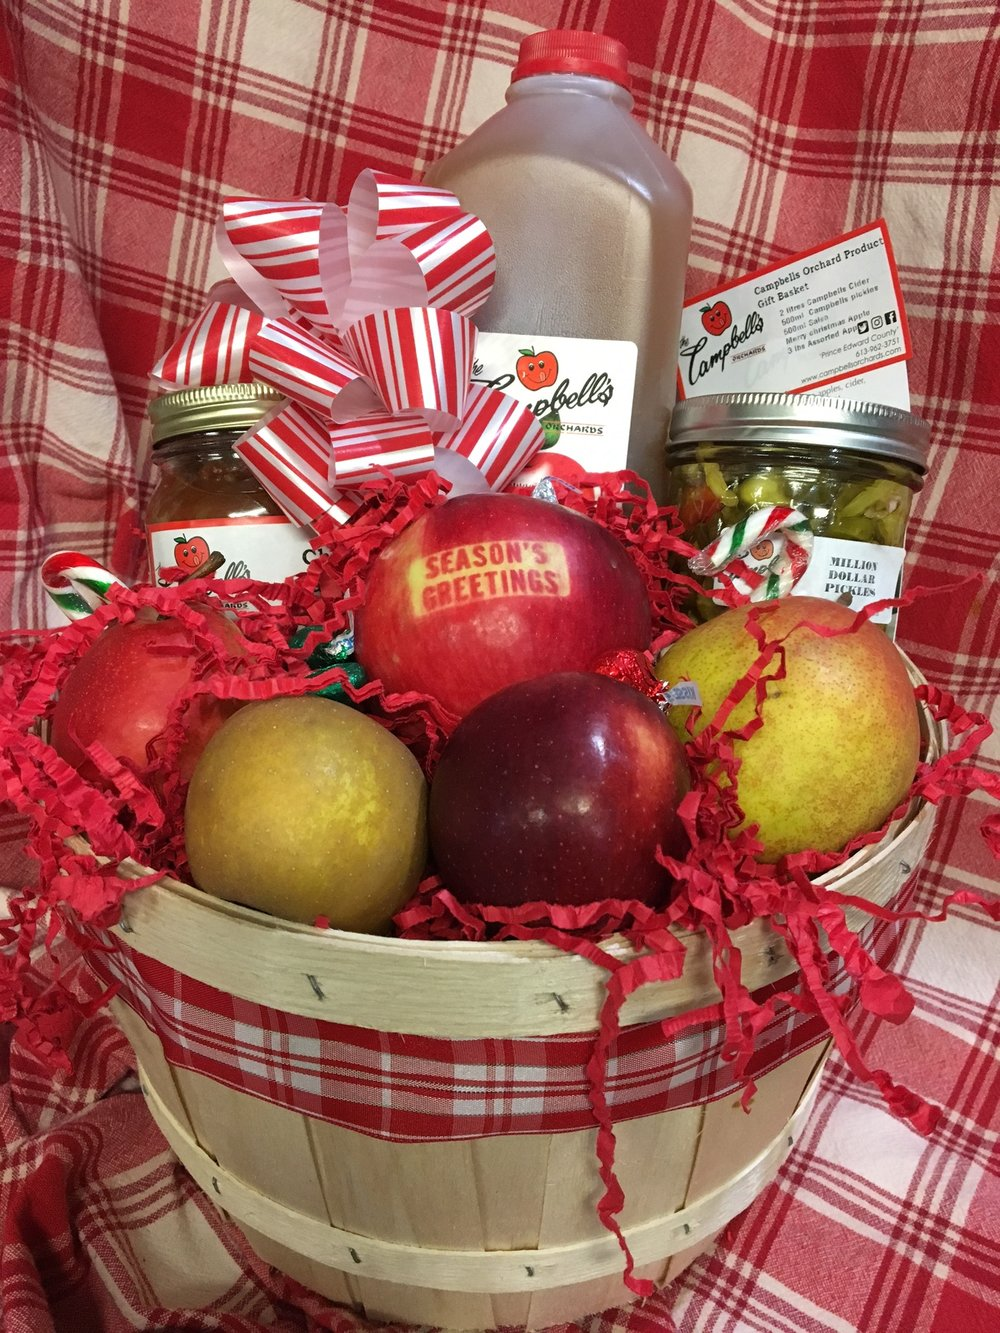 Campbell's Orchard Product Gift Peck Basket - $60 2 litres Campbells Fresh Sweet Cider 500ml Campbells pickles 500ml Campbells Salsa Merry Christmas Apple 3 lbs Assorted Apples Presented in a Peck Basket filled with apples and topped with candy canes and a bow